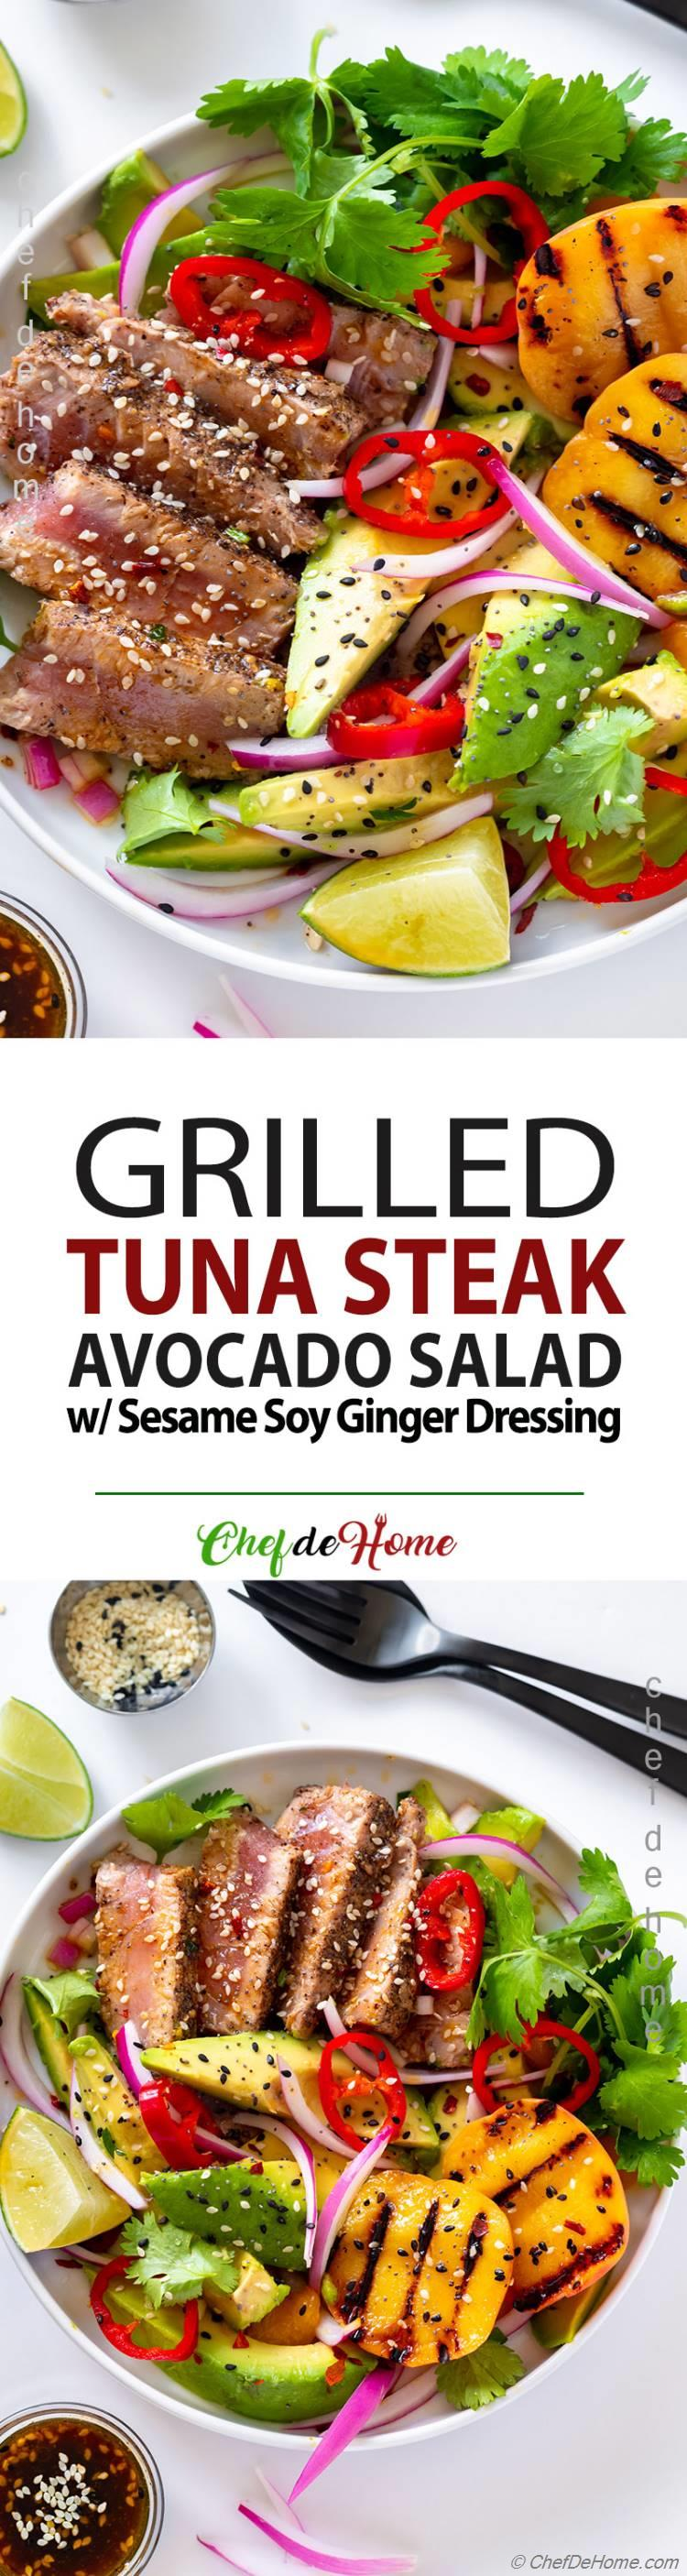 Fresh Tuna Grilled Steak Salad Recipe